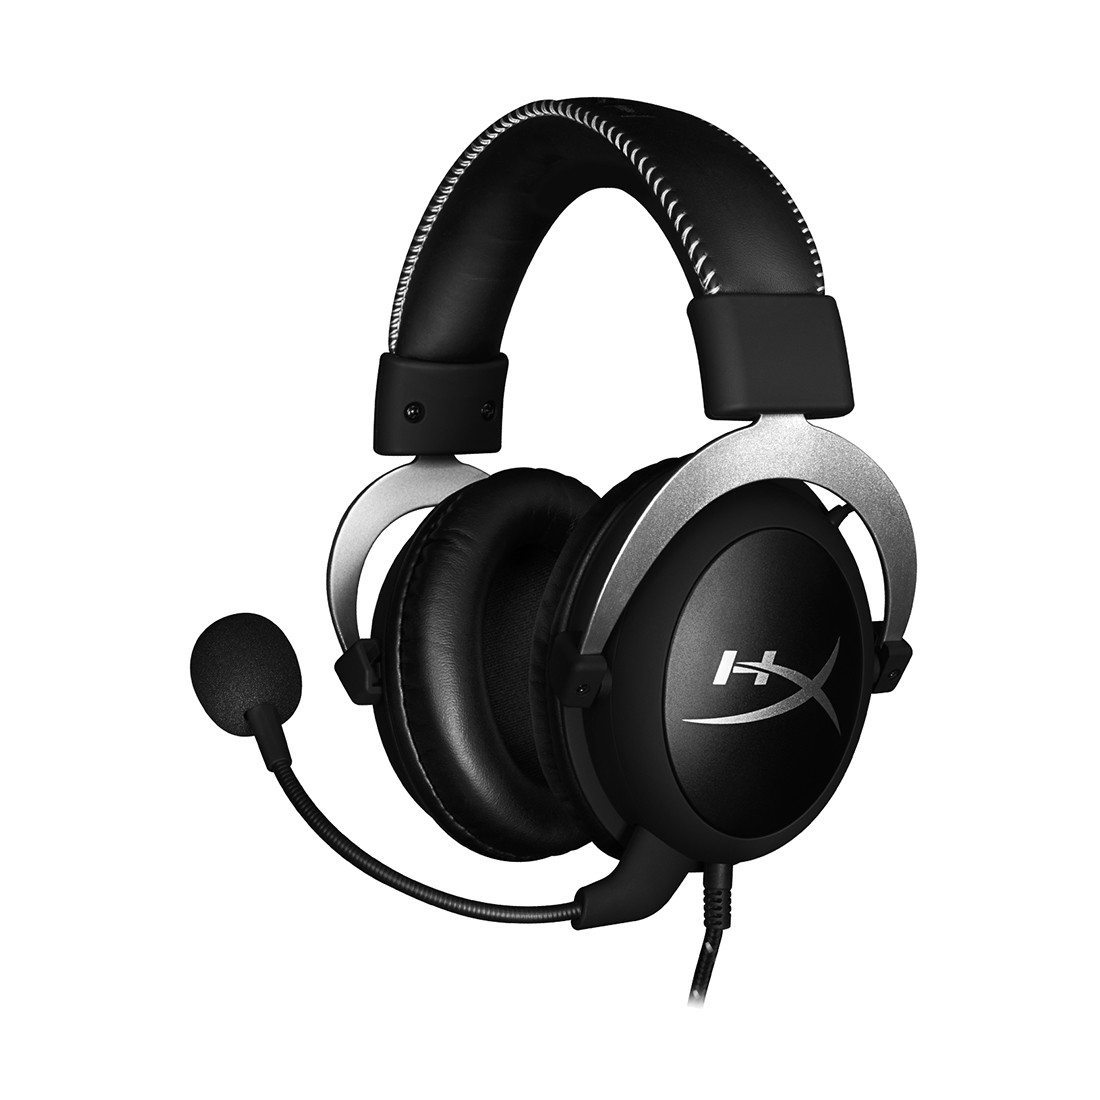 Наушники HyperX Cloud Gaming Headset - Silver HX-HSCL-SR/NA